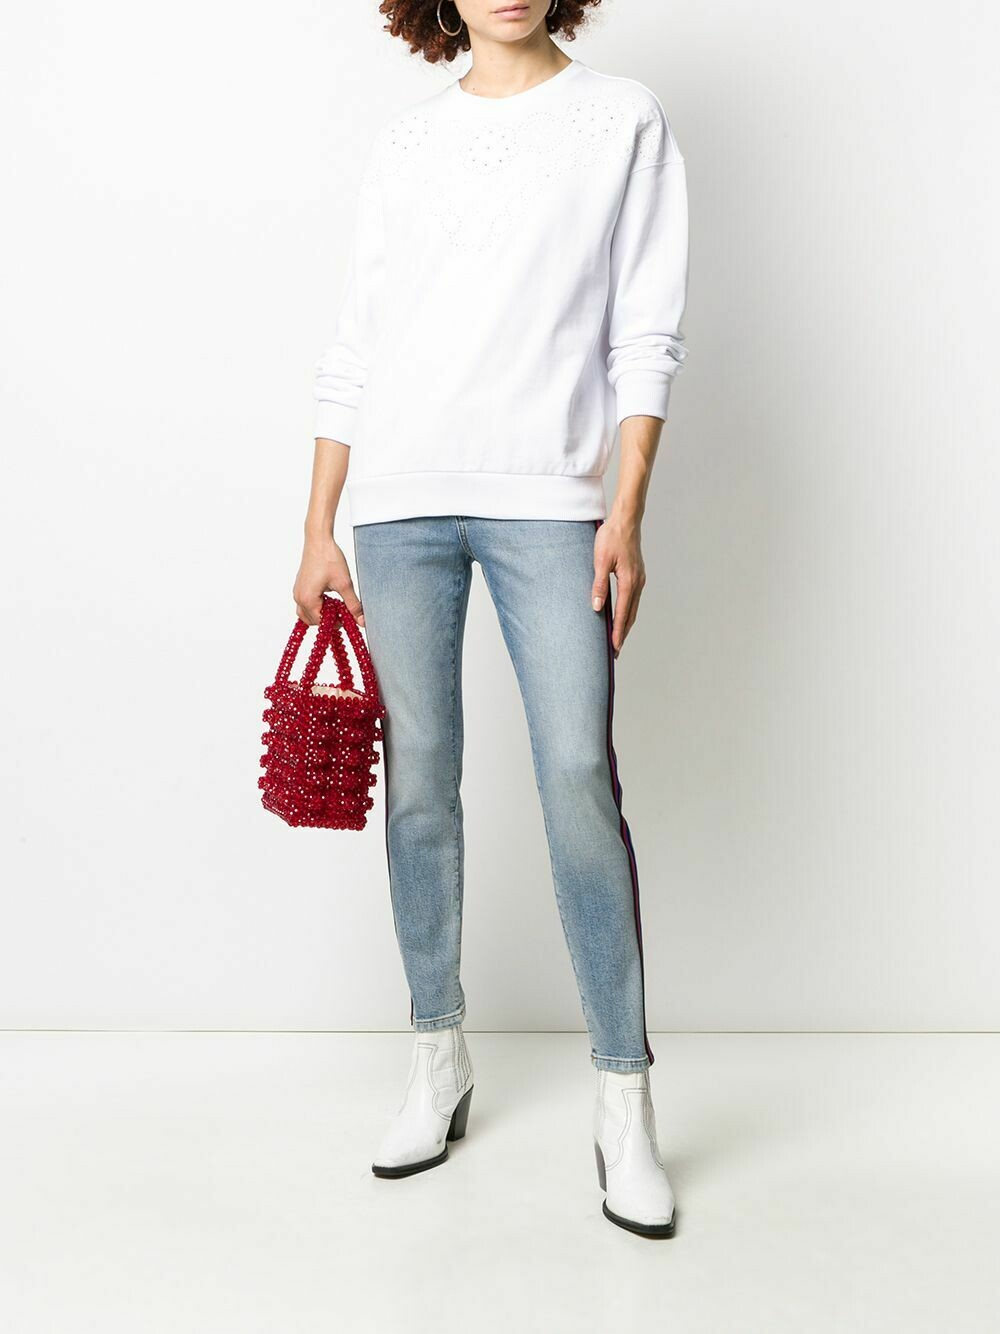 Escada SS20 Sport Jeans in Bright Blue